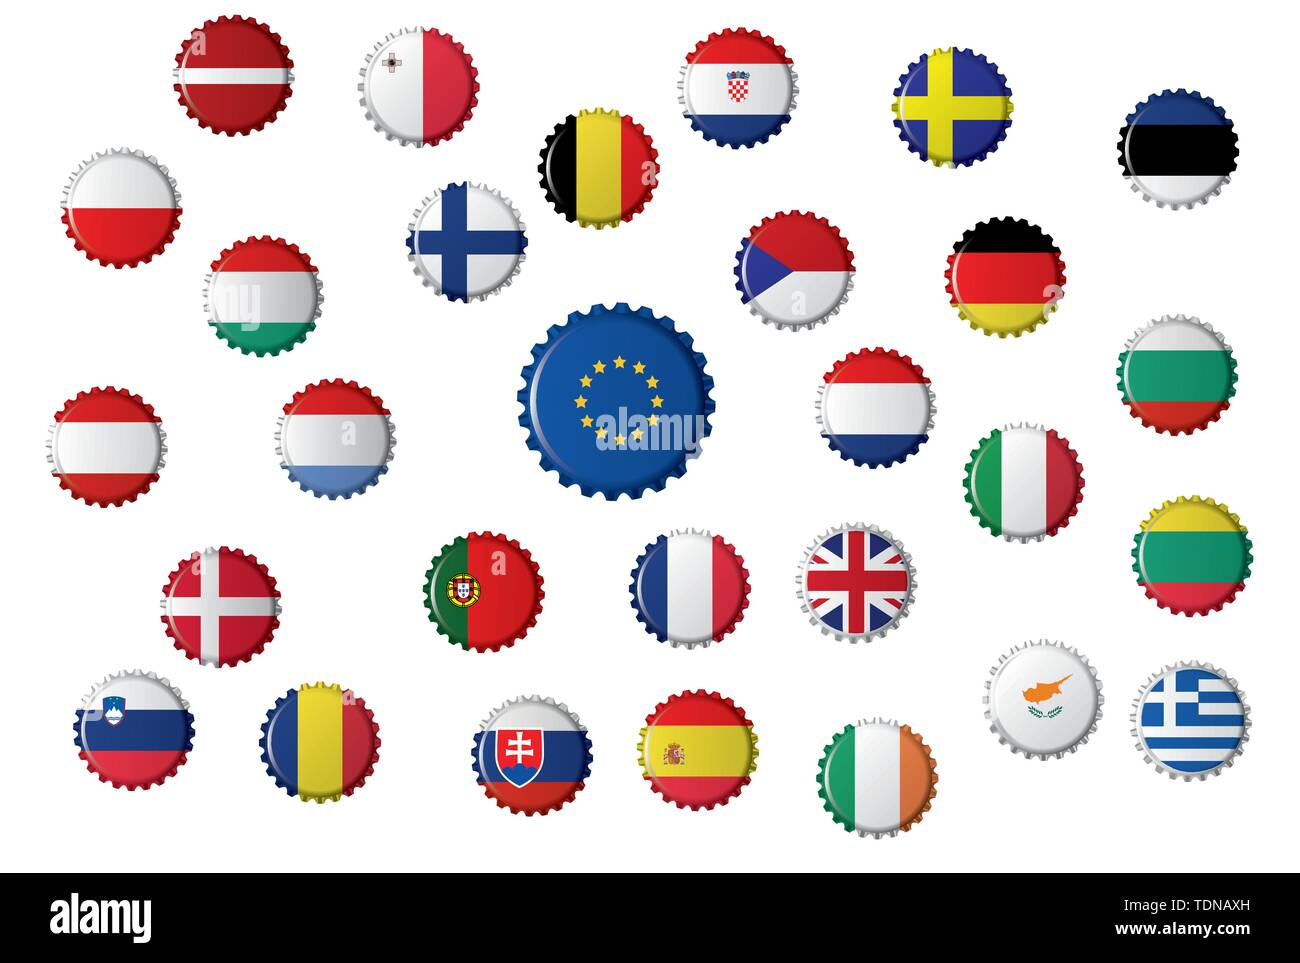 Bottle caps with different flags, the European Union and the countries that it includes. - Stock Image